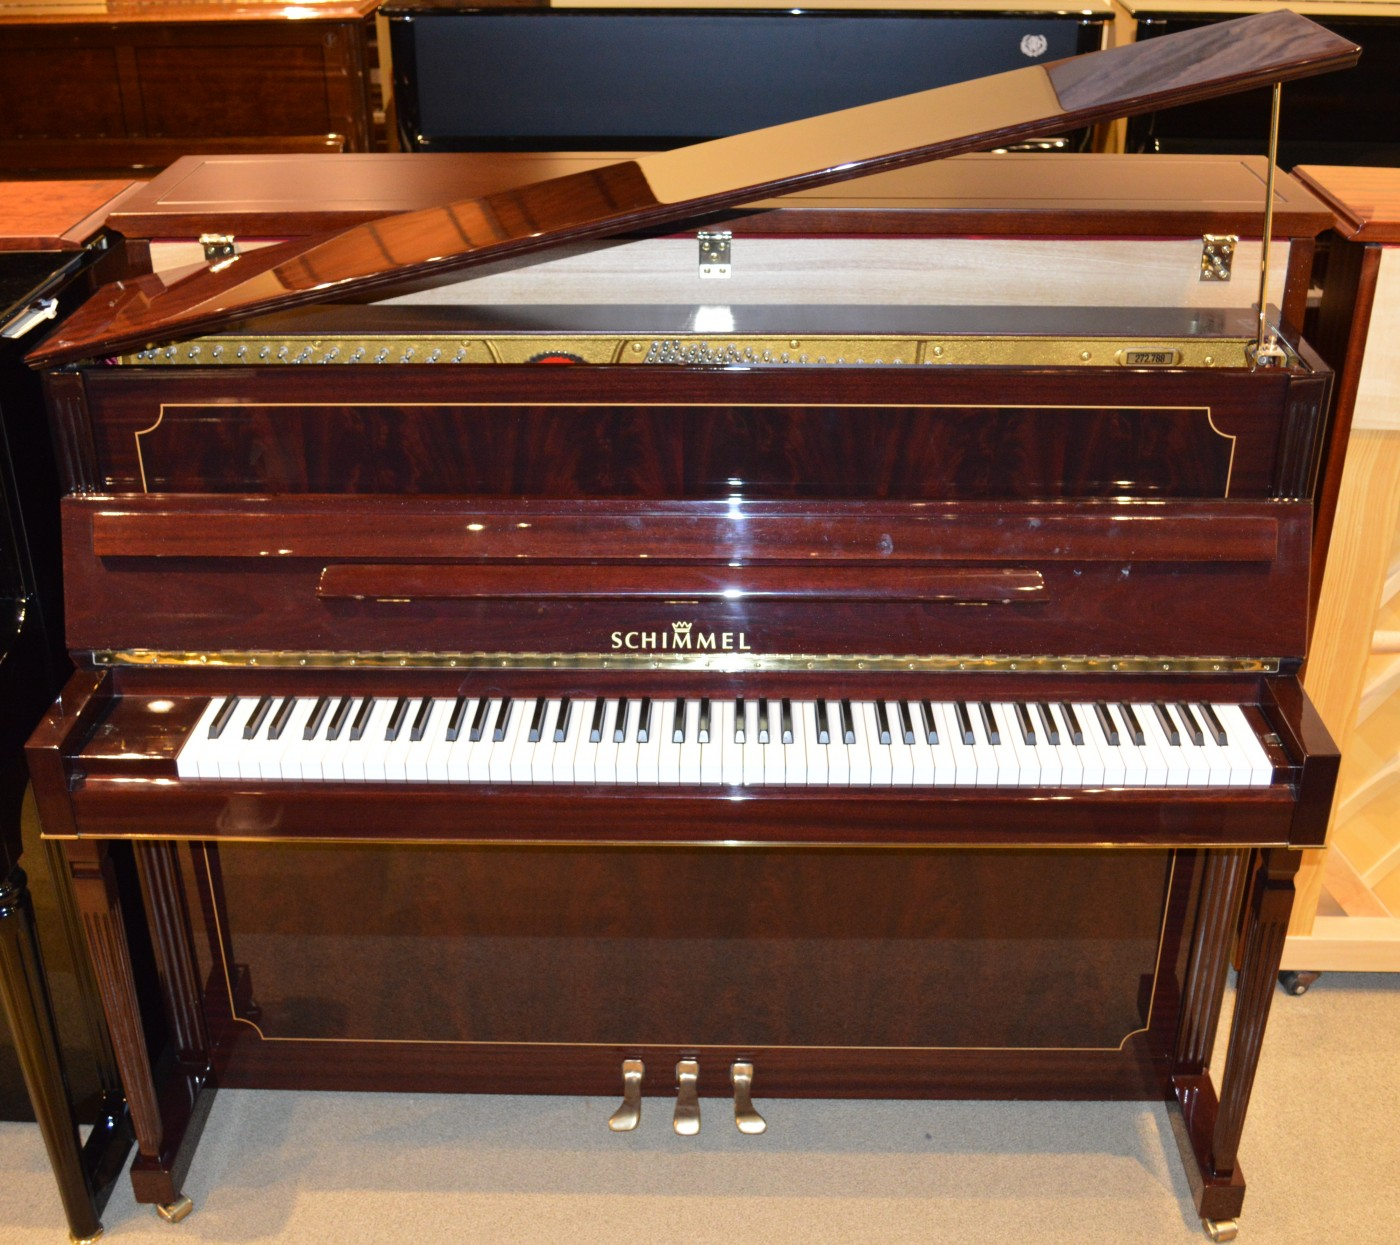 Piano Kaufen Schimmel Pianos For Sale New And Used Schimmel Pianos Roger S